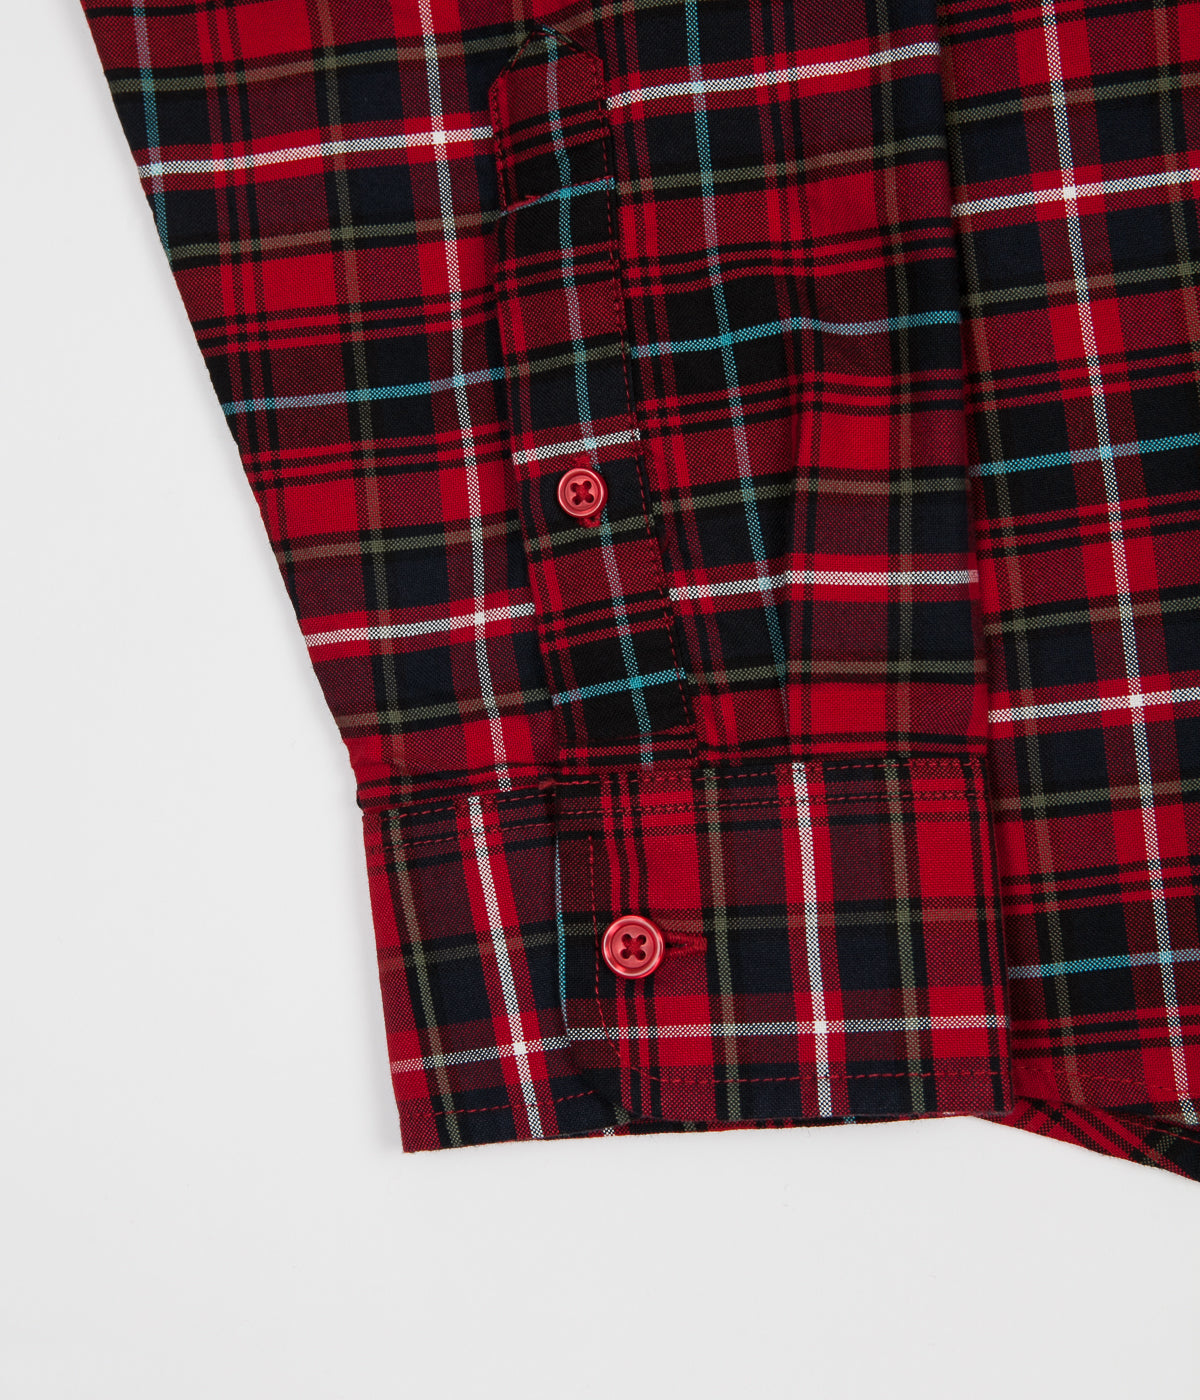 Carhartt Patton Check Shirt - Blast Red / Soft Teal